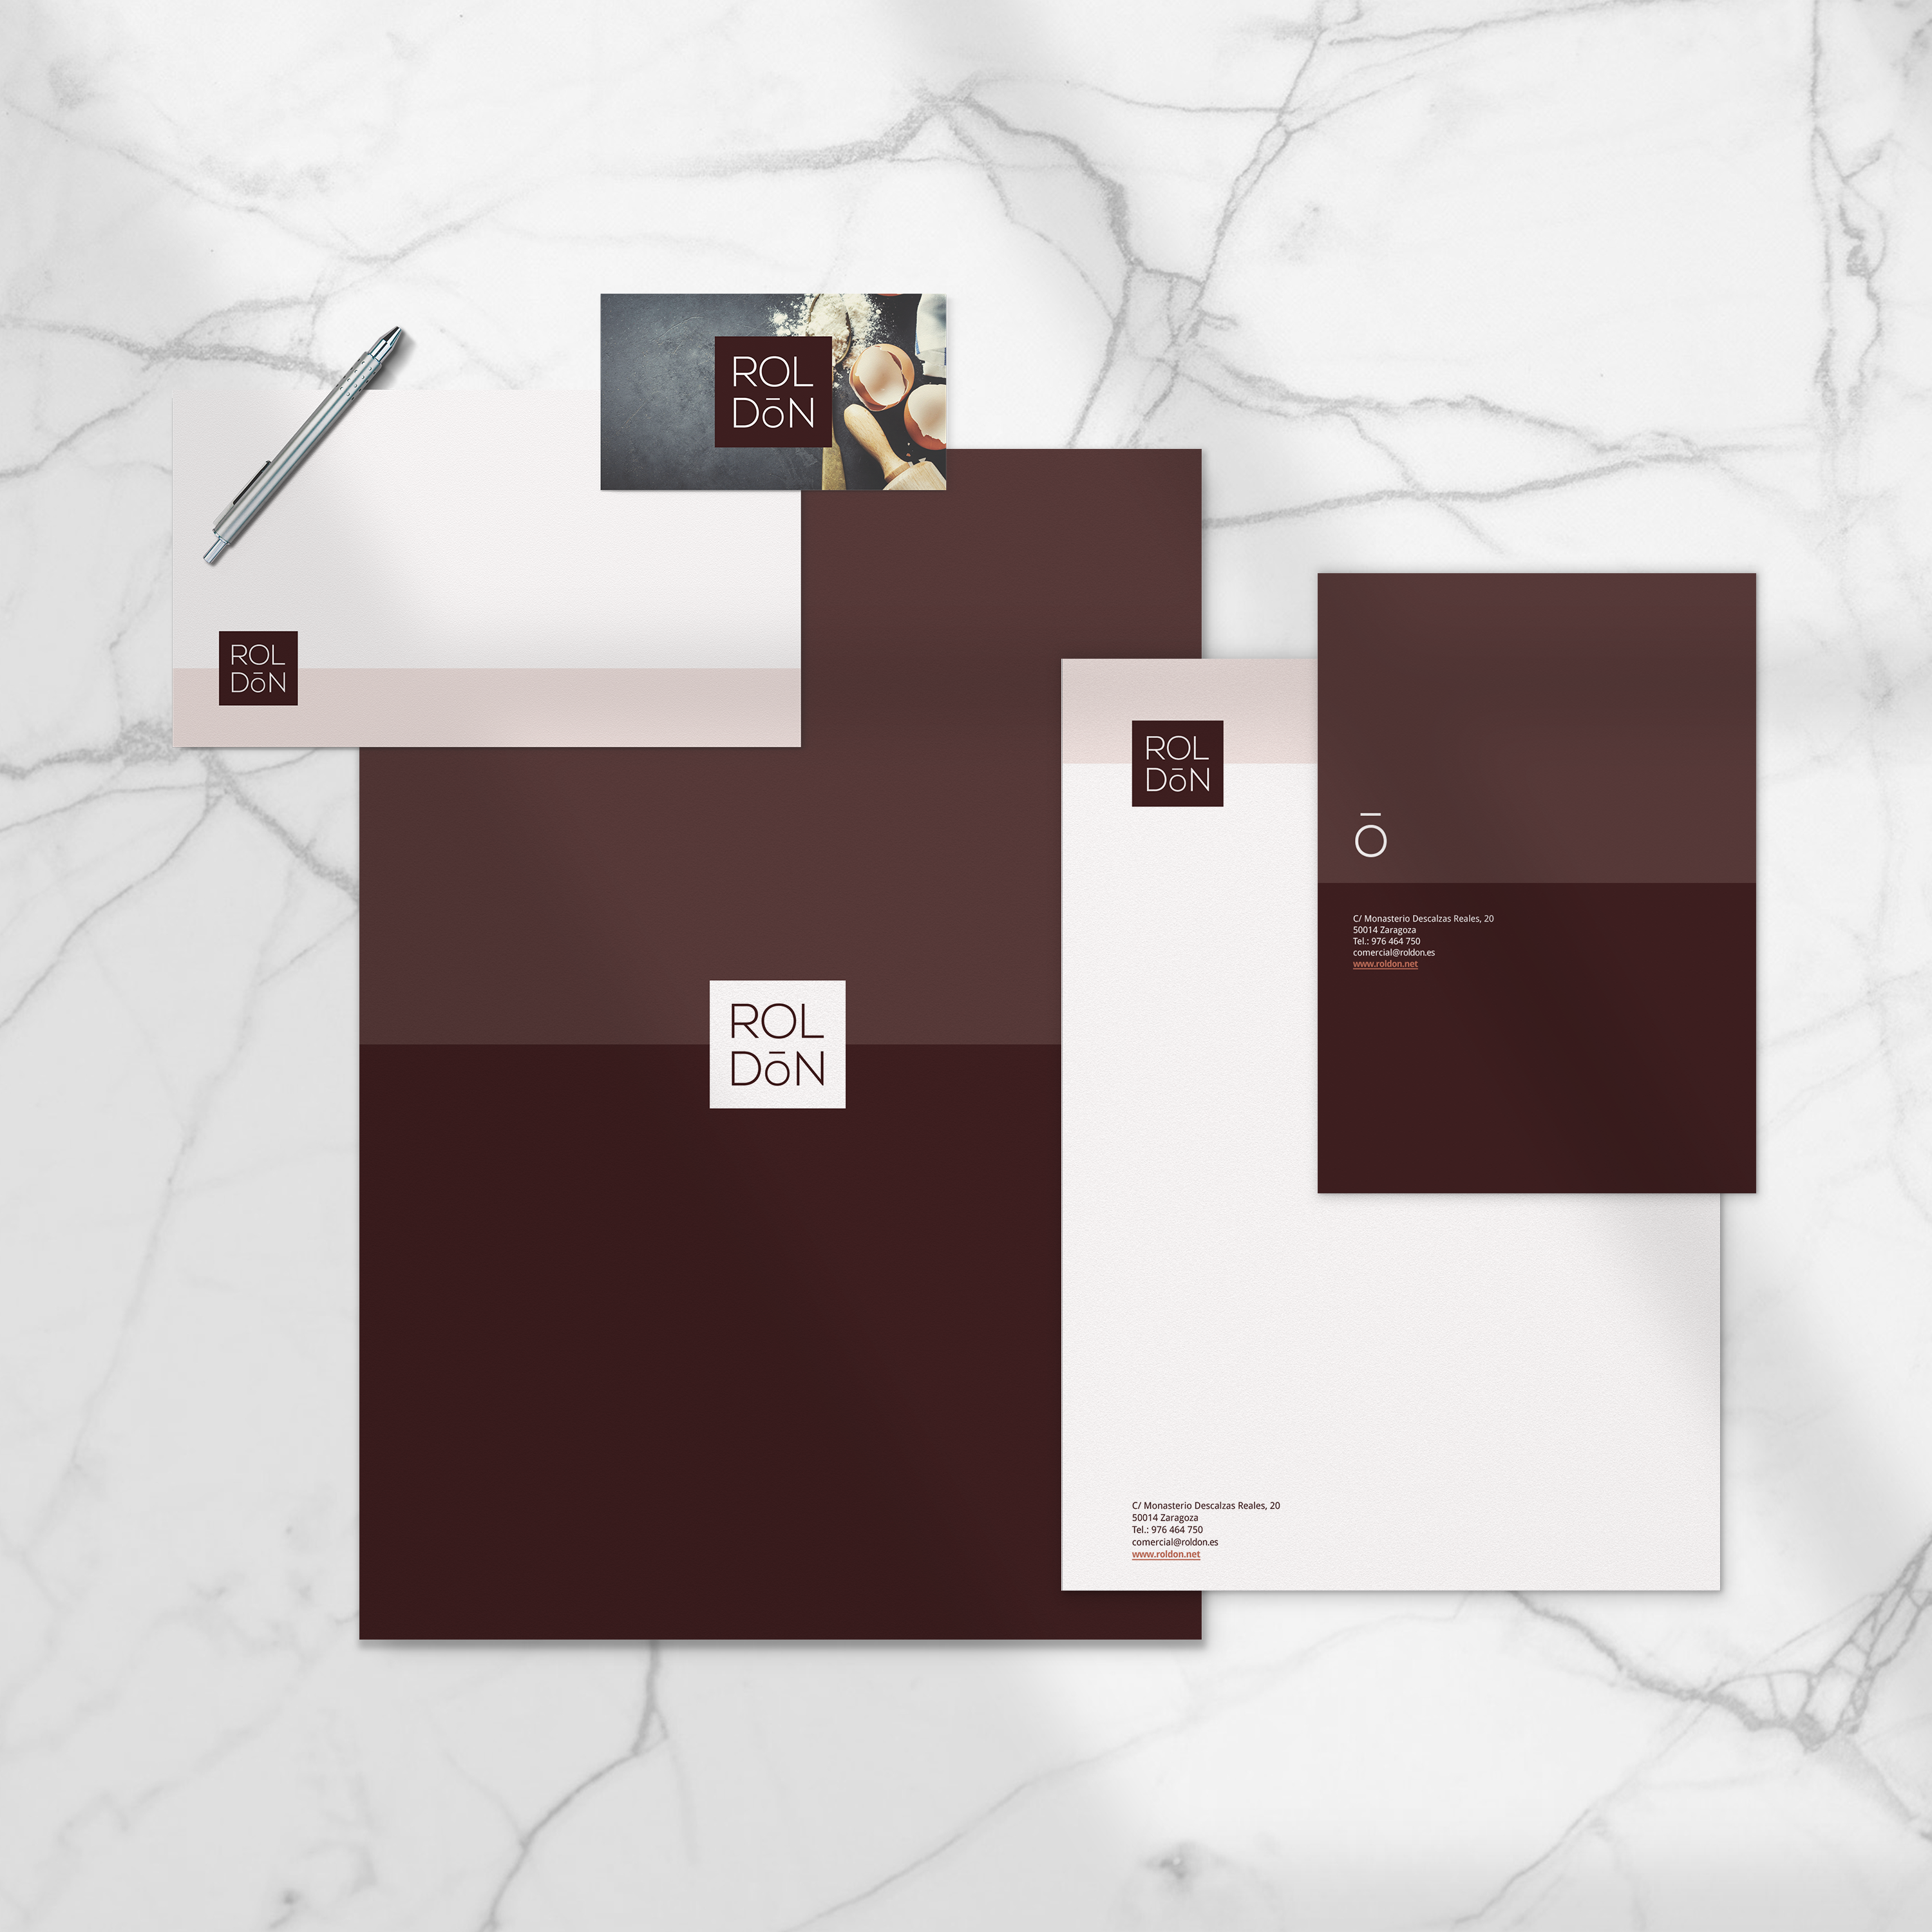 http://auppa.com/wp-content/uploads/2019/09/roldon-stationery.png